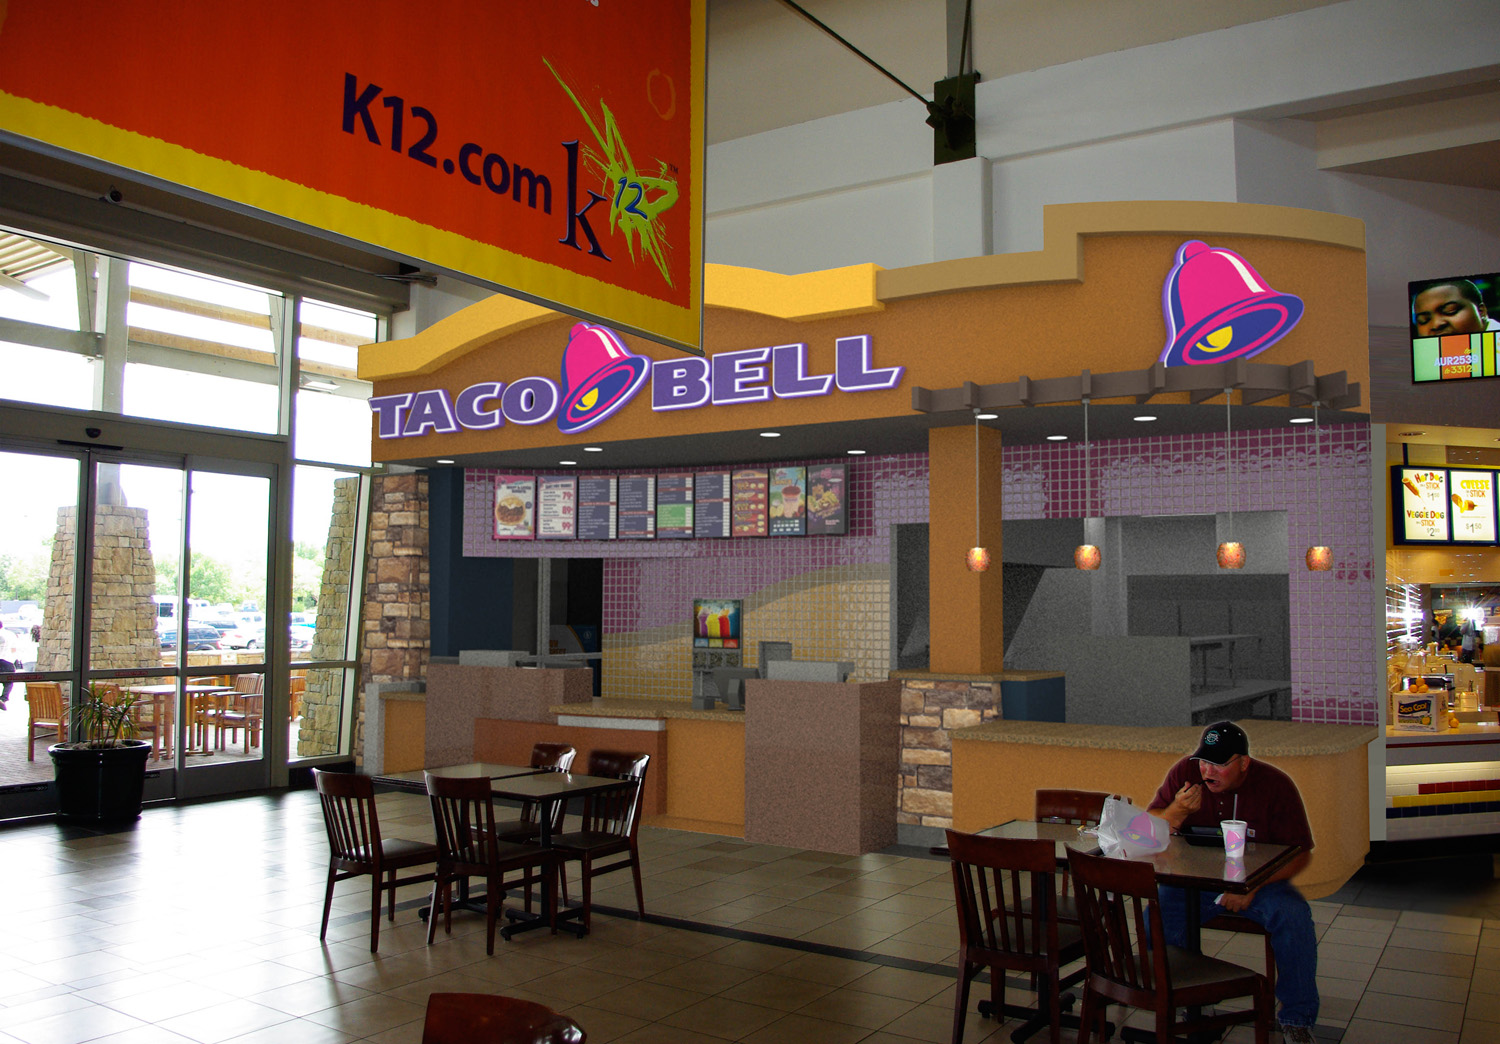 taco bell - aurora mall - concept rendering